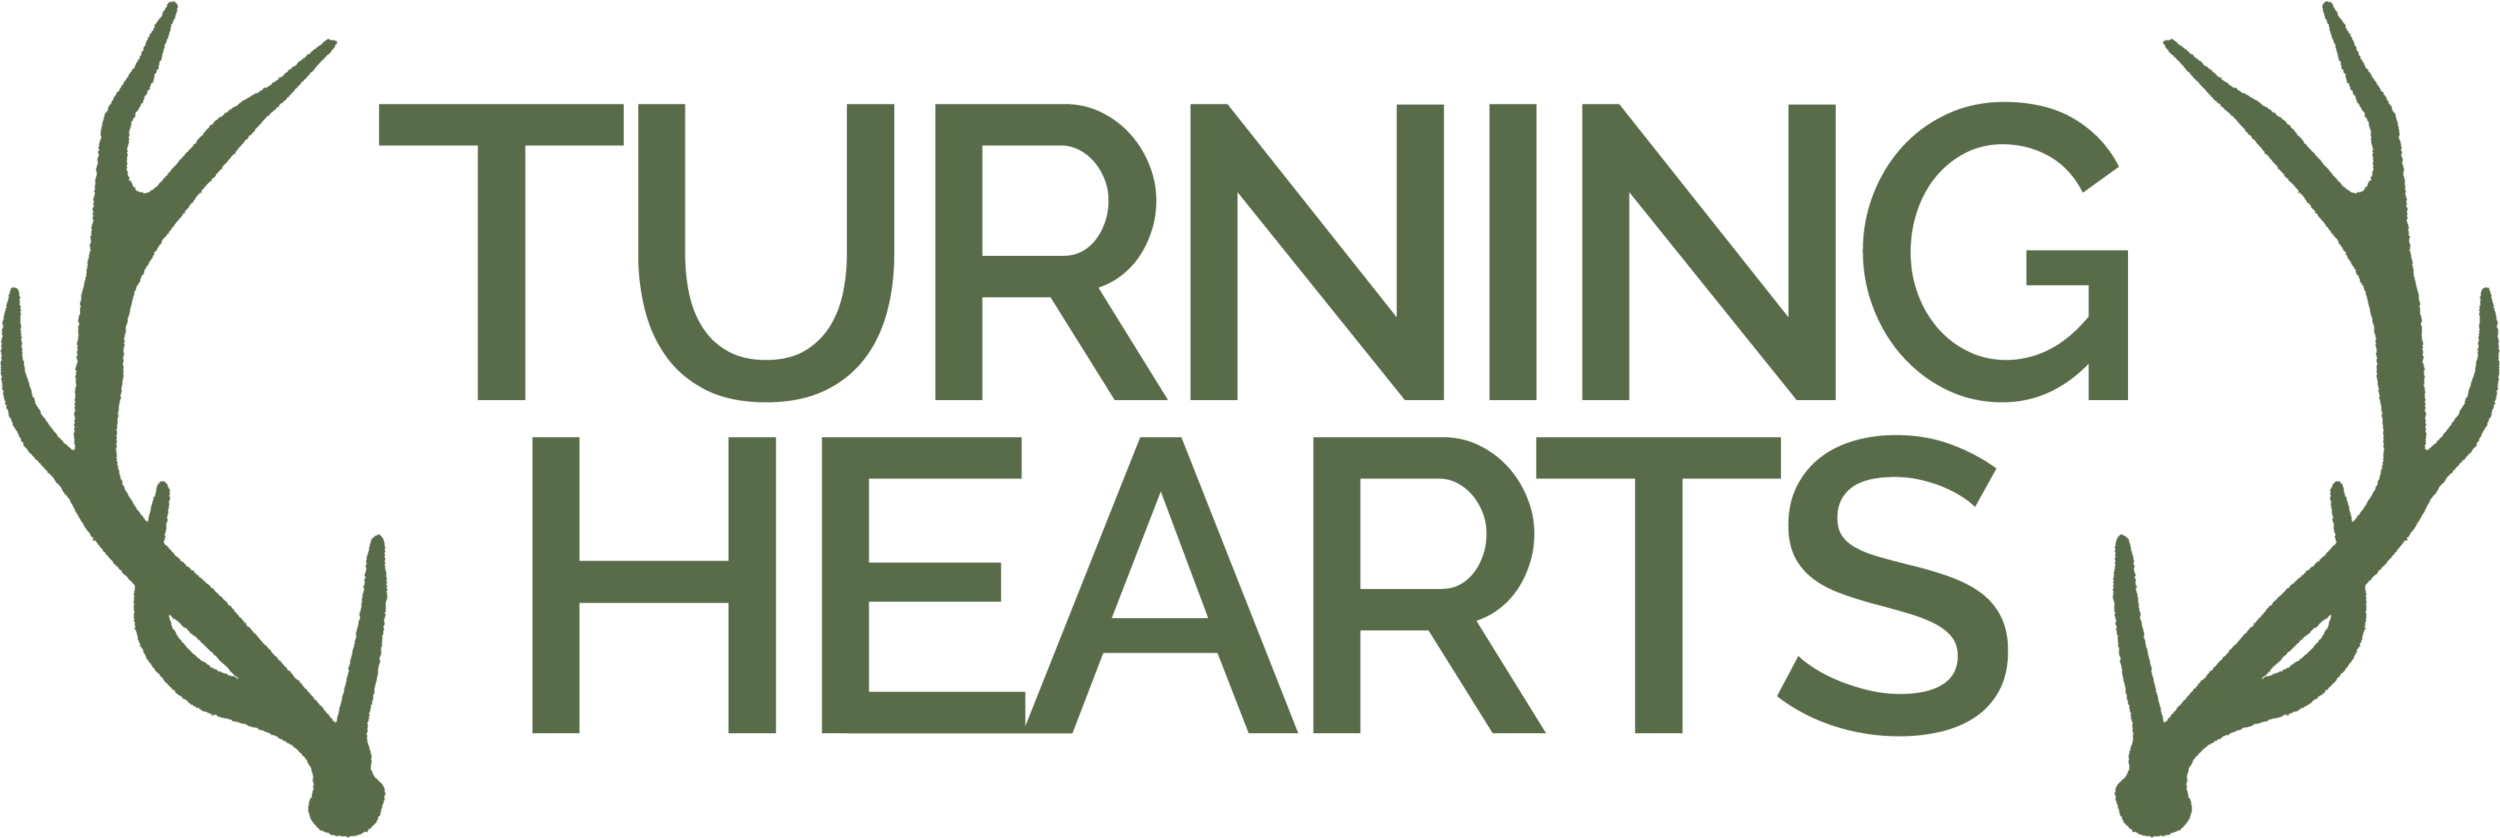 turninghearts9.png